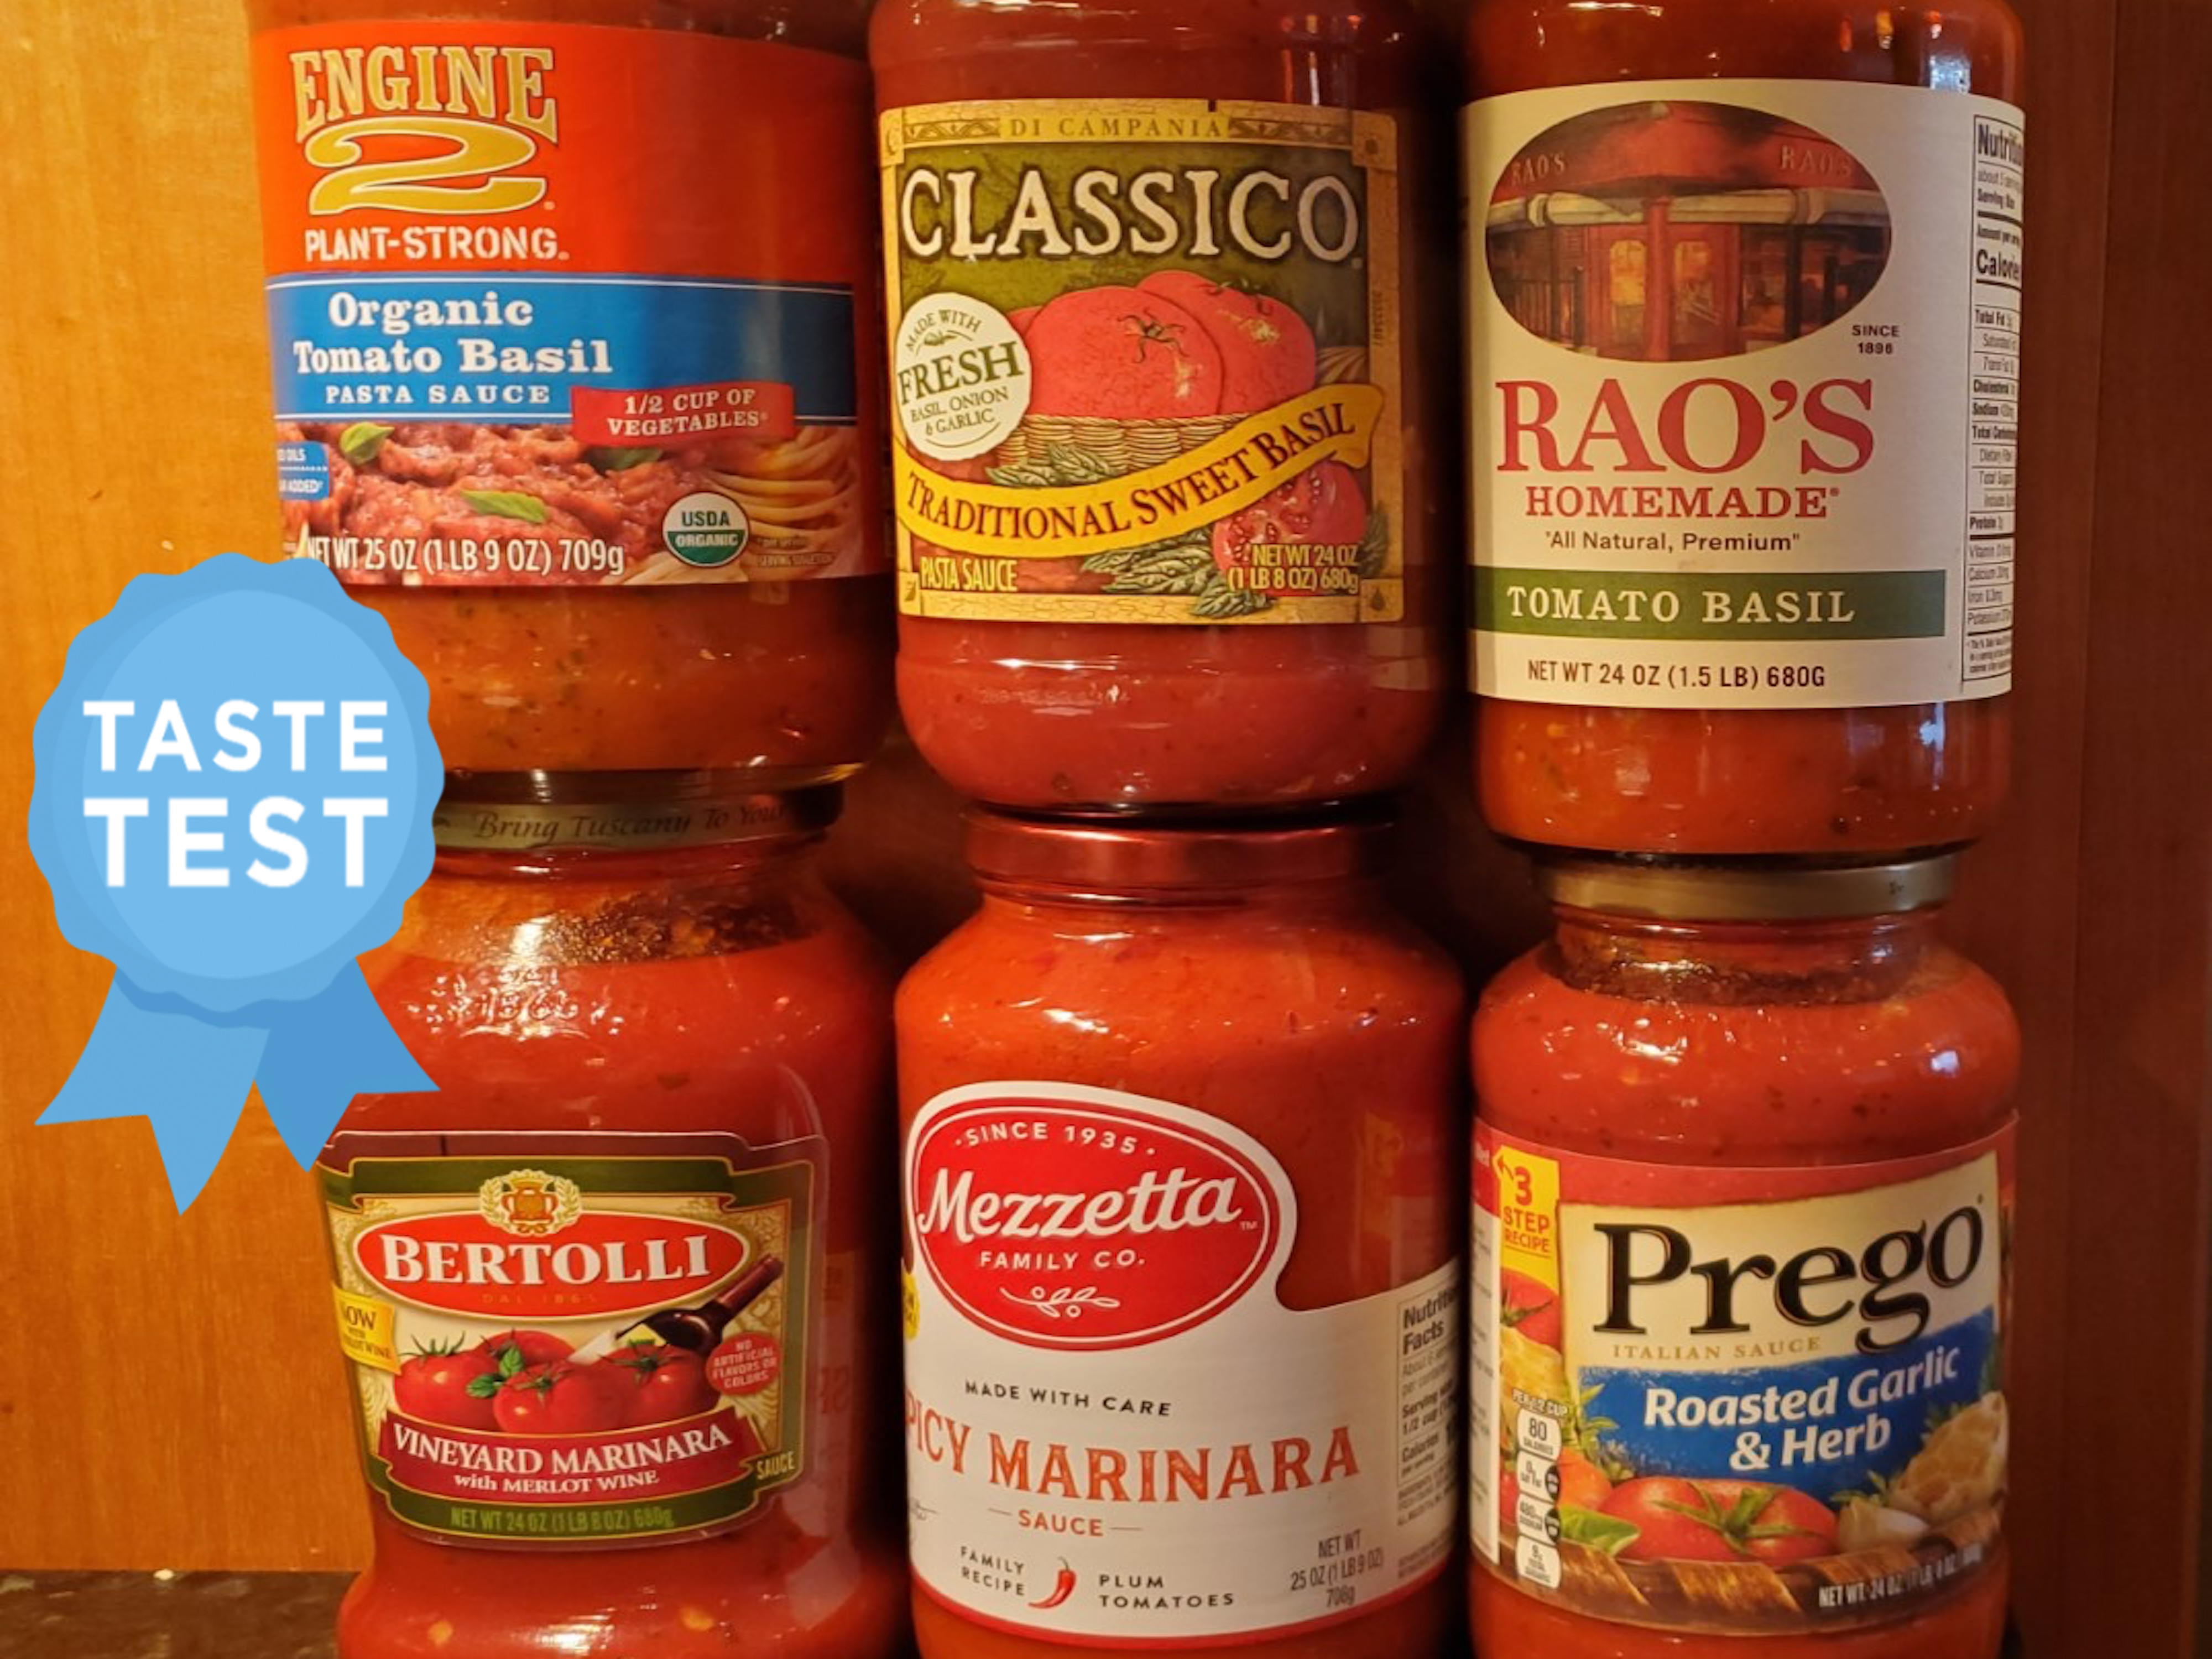 We Tried 6 Store-Bought Marinara Sauces and This Was Our Favorite